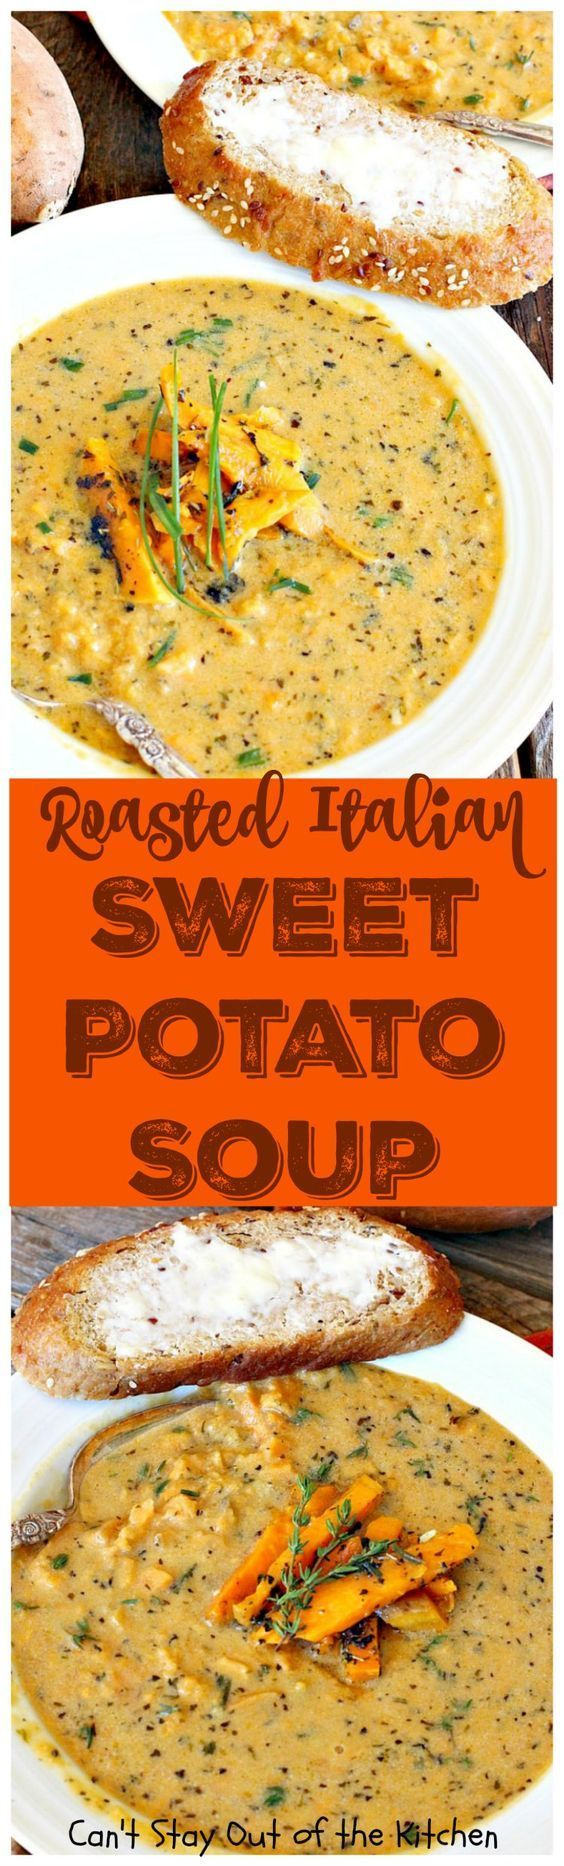 Roasted Italian Sweet Potato Soup | Can't Stay Out of the Kitchen | this #soup is amazing comfort food. Roasting the #sweetpotatoes adds incredible flavor. Plus, the soup is healthy, low calorie, #glutenfree